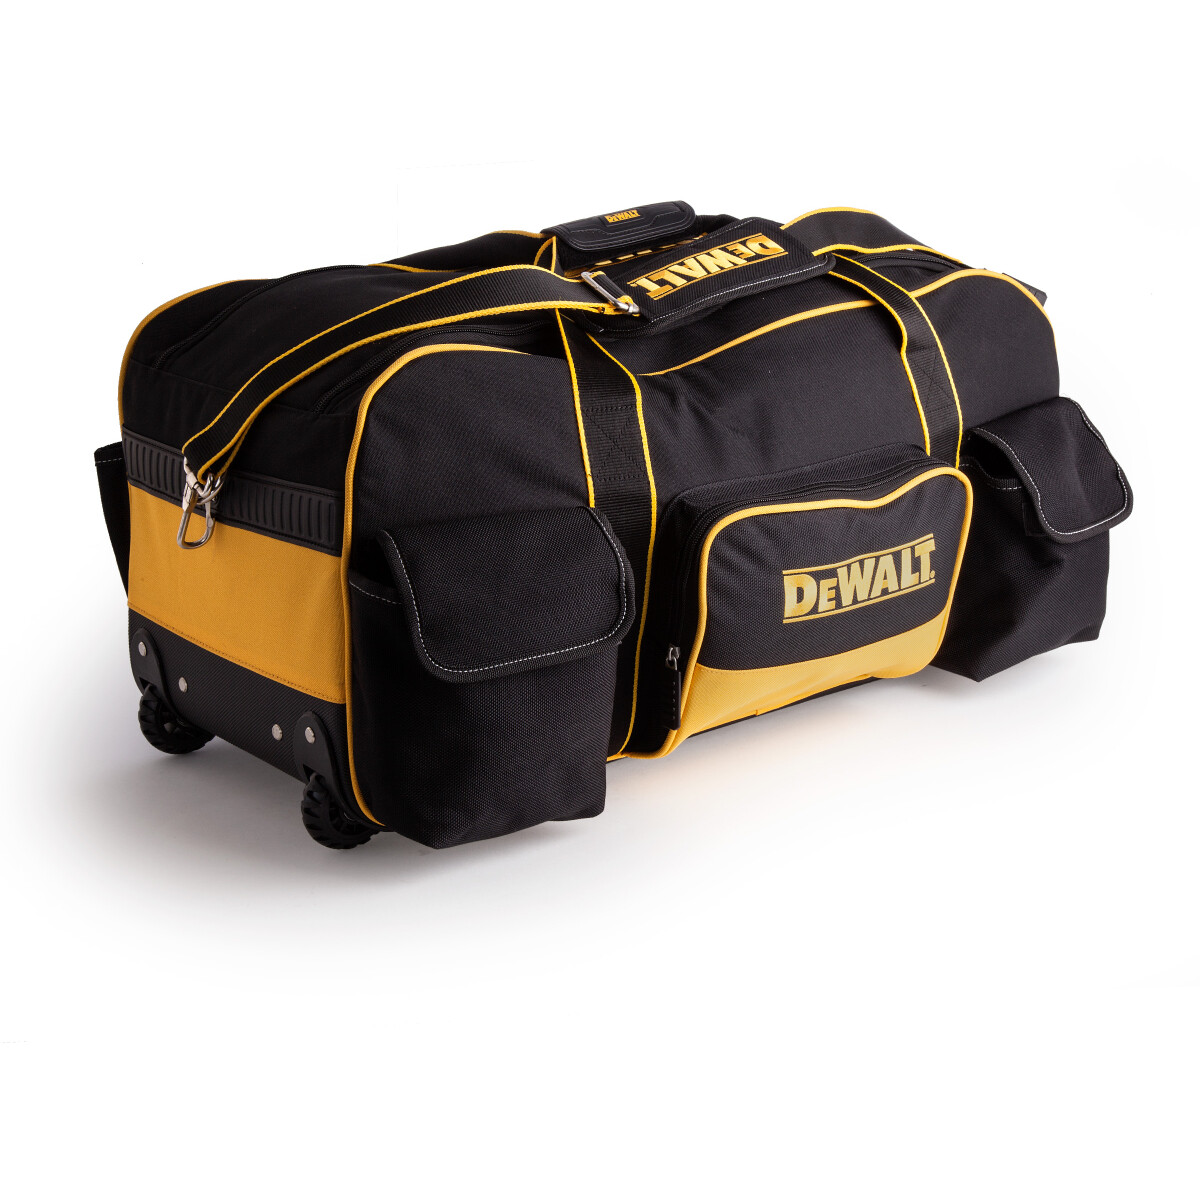 Dewalt Dwst1 79210 Large Duffle Bag With Wheels From Lawson His